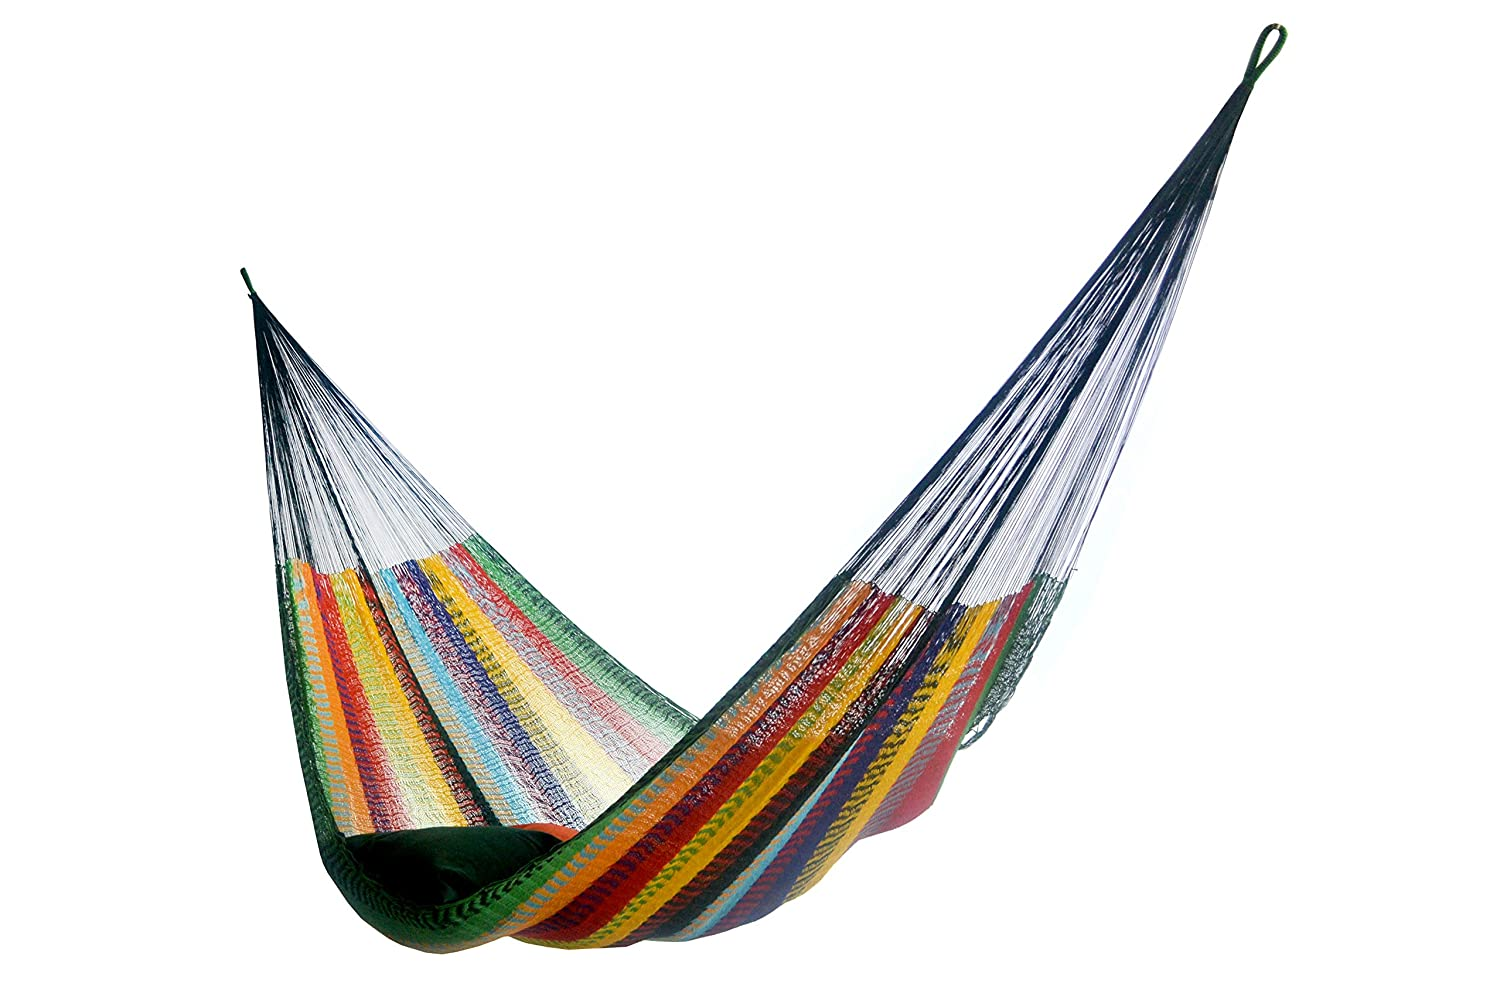 Hammocks Rada: Handmade Yucatan Hammock - Matrimonial Size Tropical Multicolor - 13ft Long Artisan Crafted